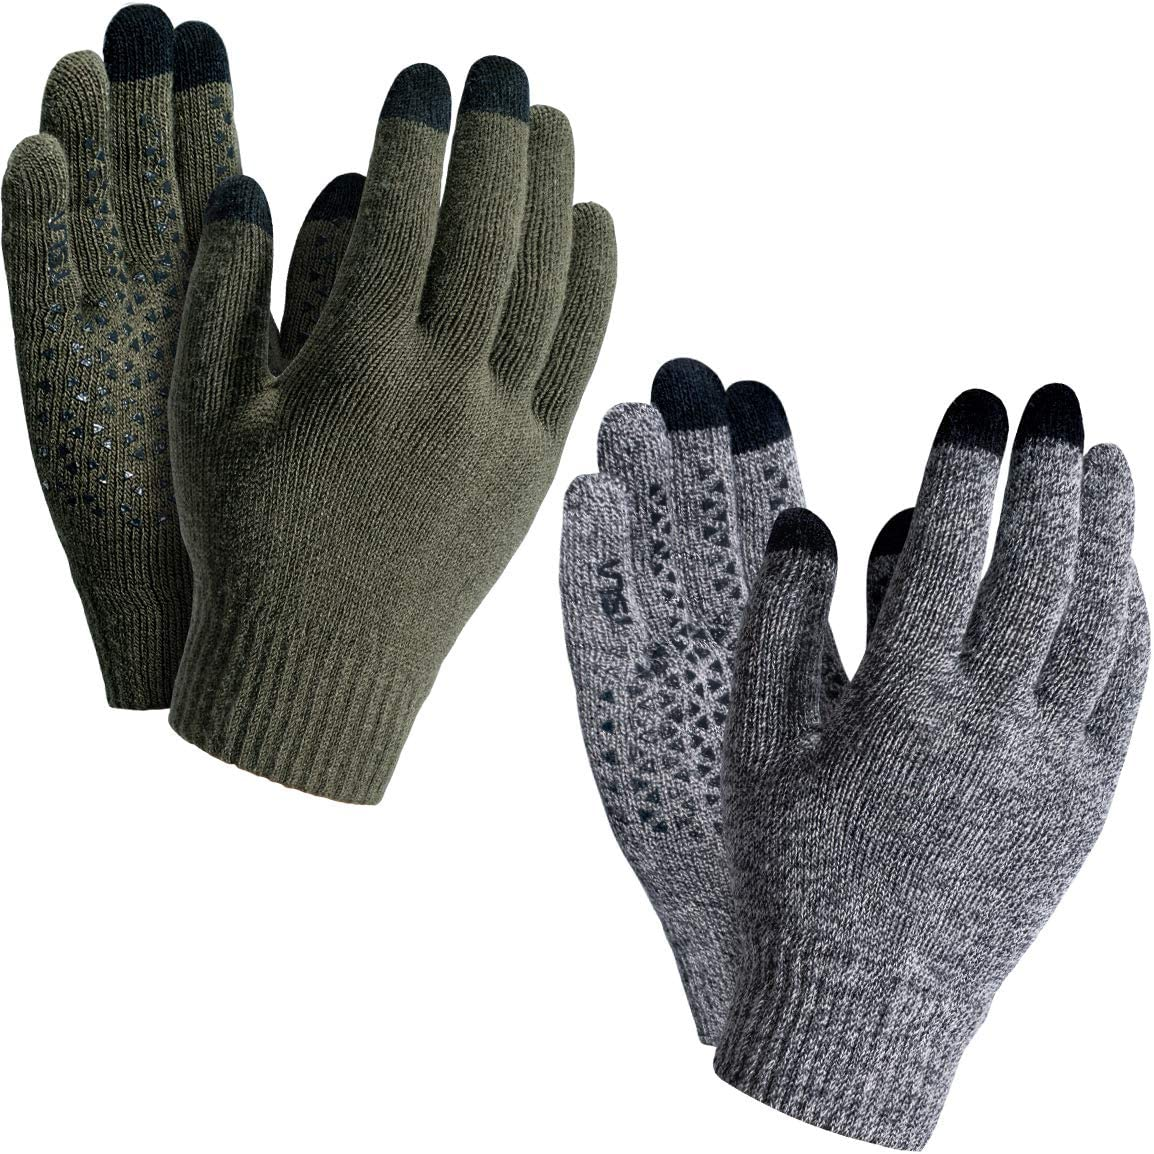 TSLA 1 or 2 Pack Men and Women Touch Screen Winter Gloves, Texting Anti-Slip Thermal Knit Gloves, Cold Weather Running Gloves